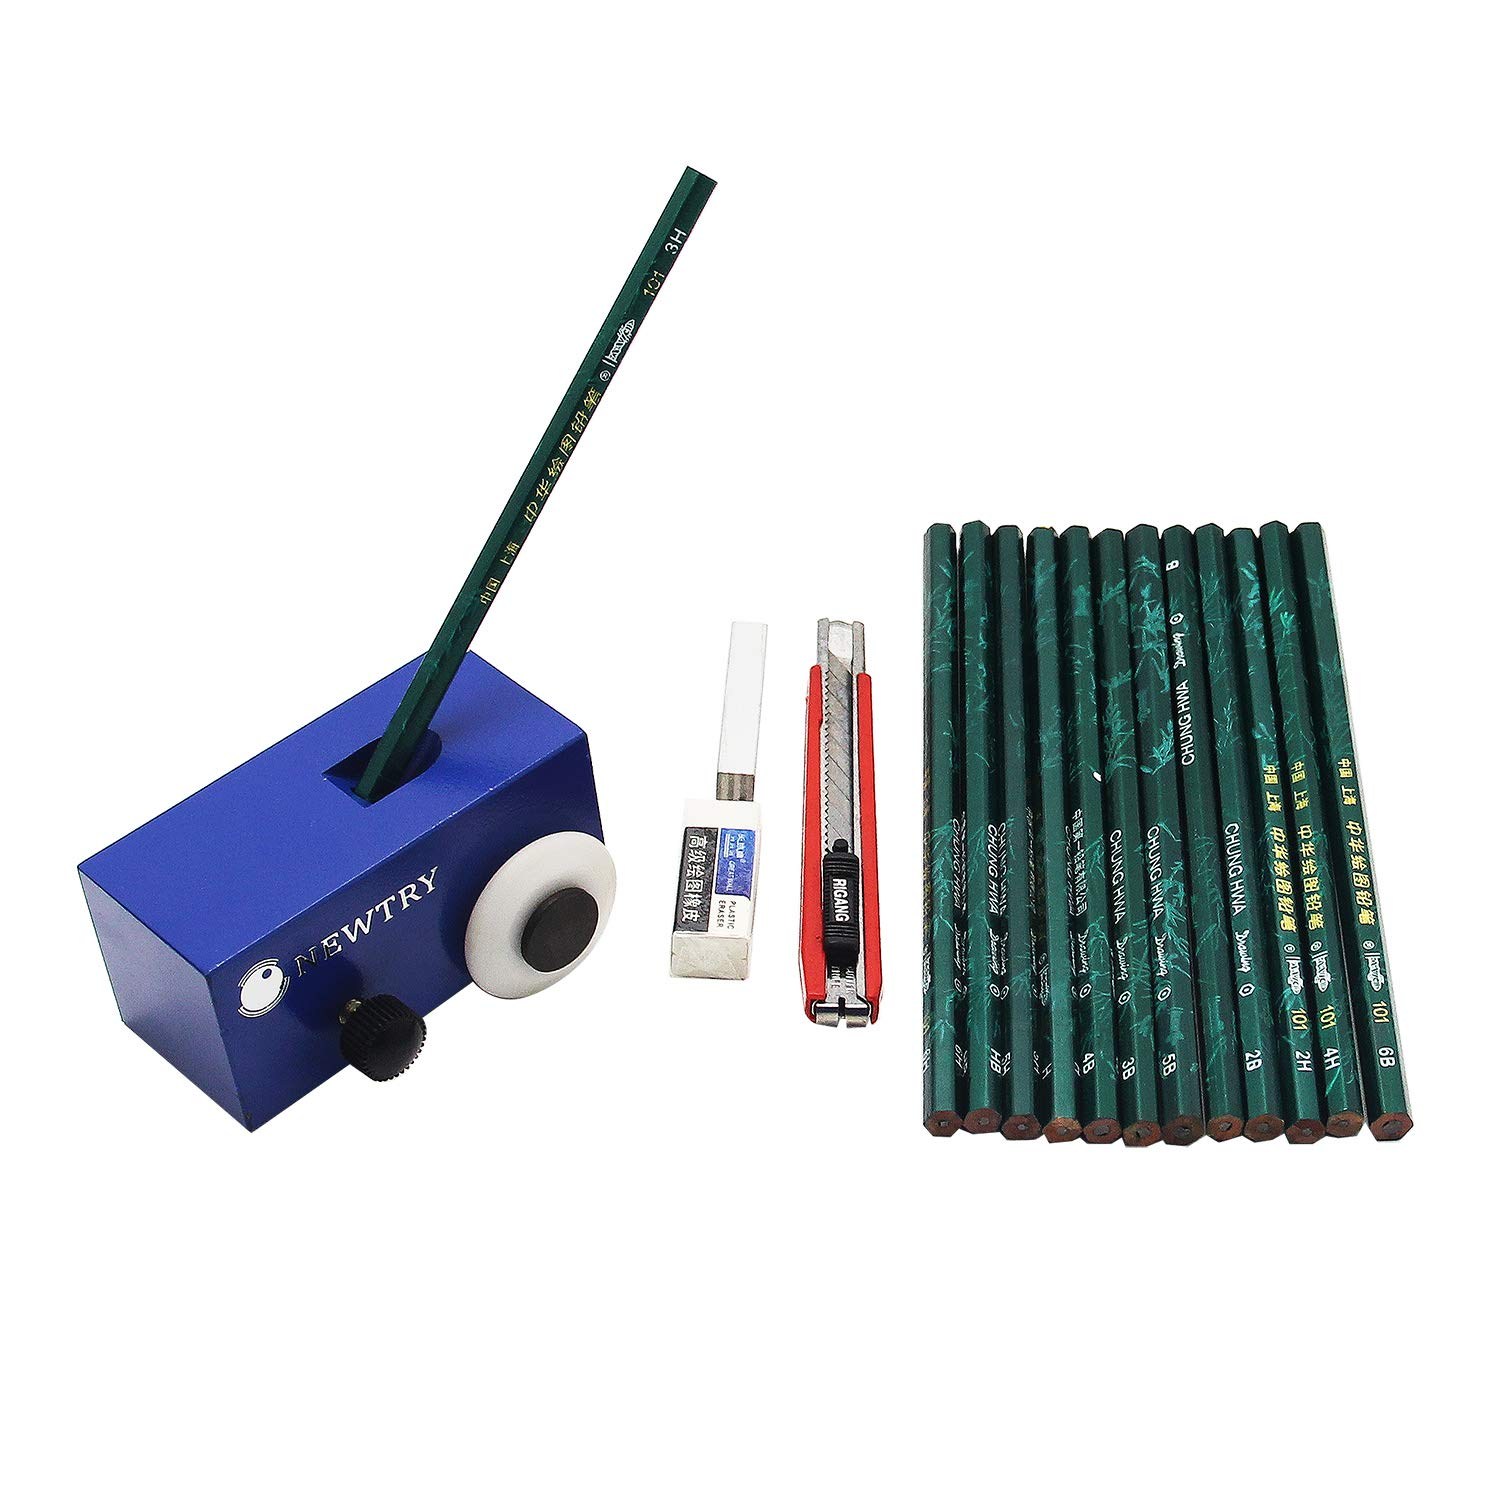 NEWTRY 500g Pencil Hardness Tester Coating Film Paint Scratch Test with 13 pcs Pencils